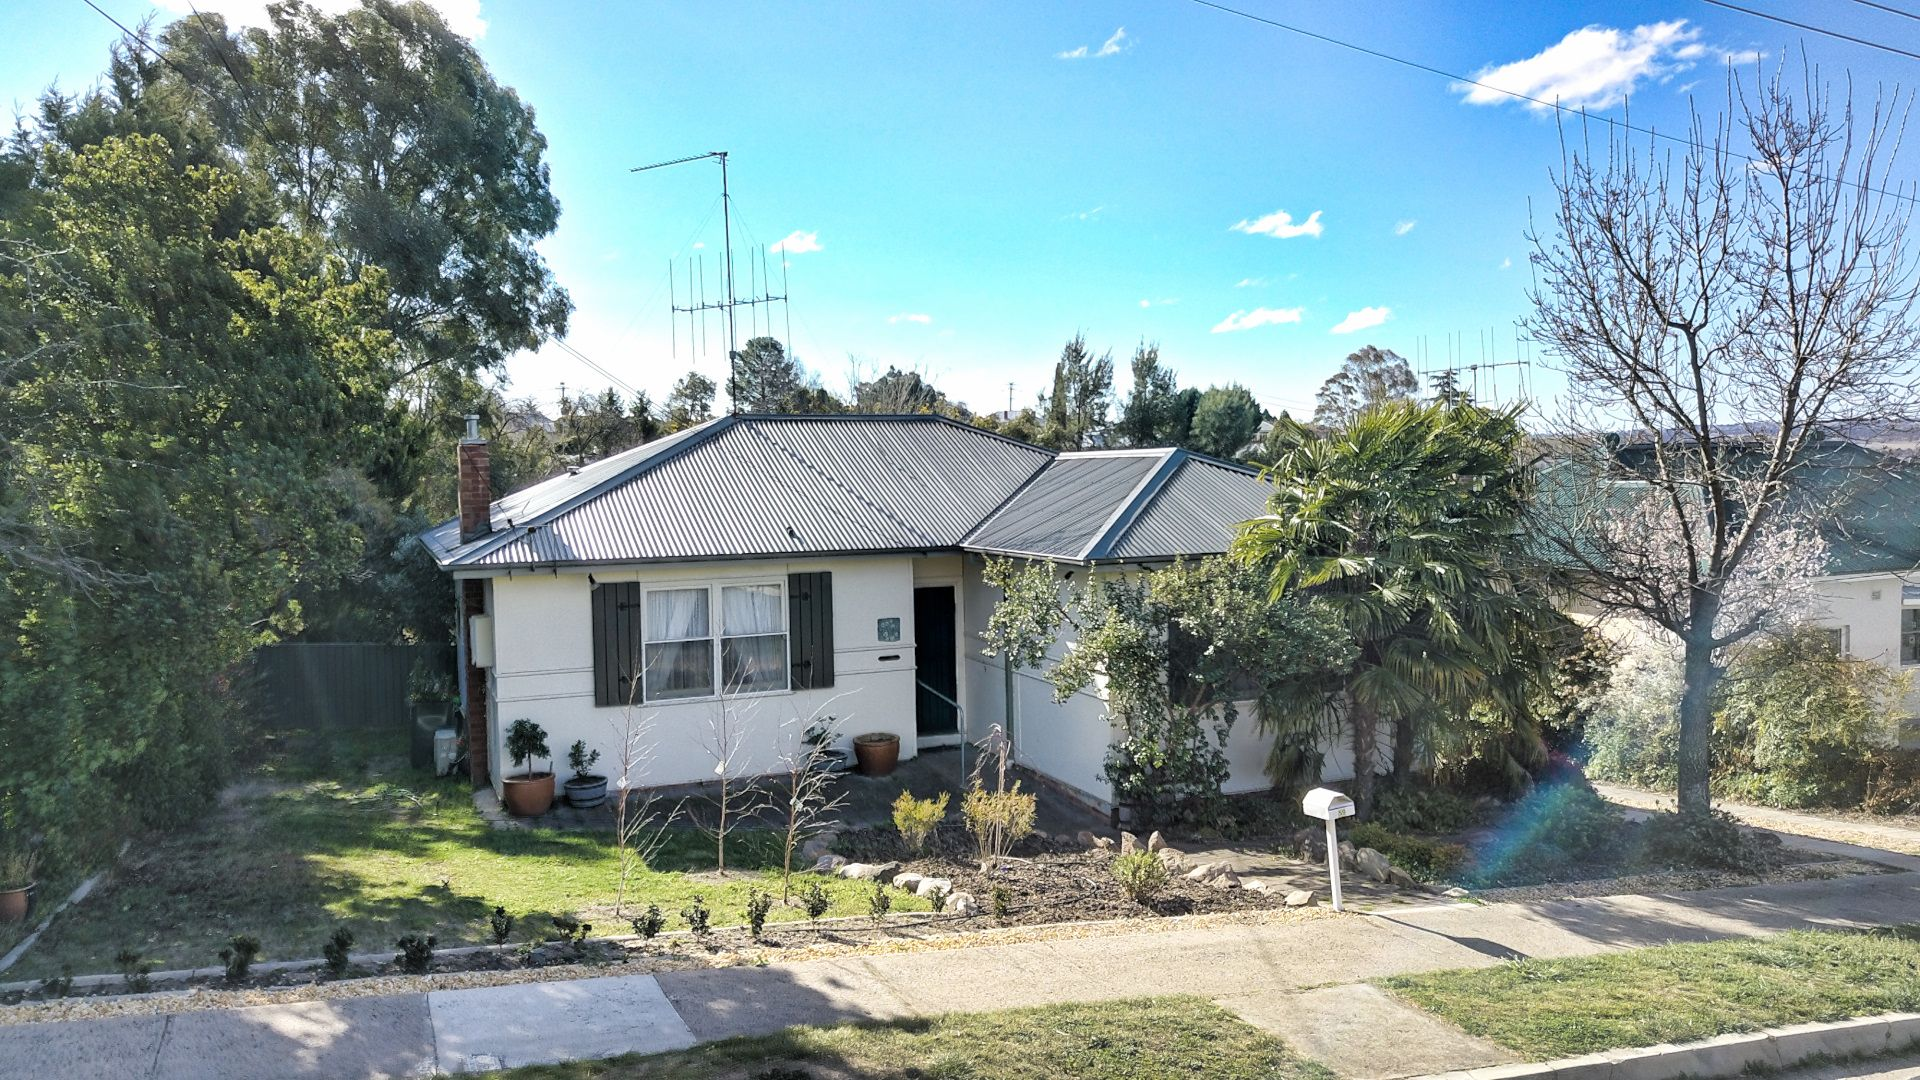 59 COMMONWEALTH , Bathurst NSW 2795, Image 1